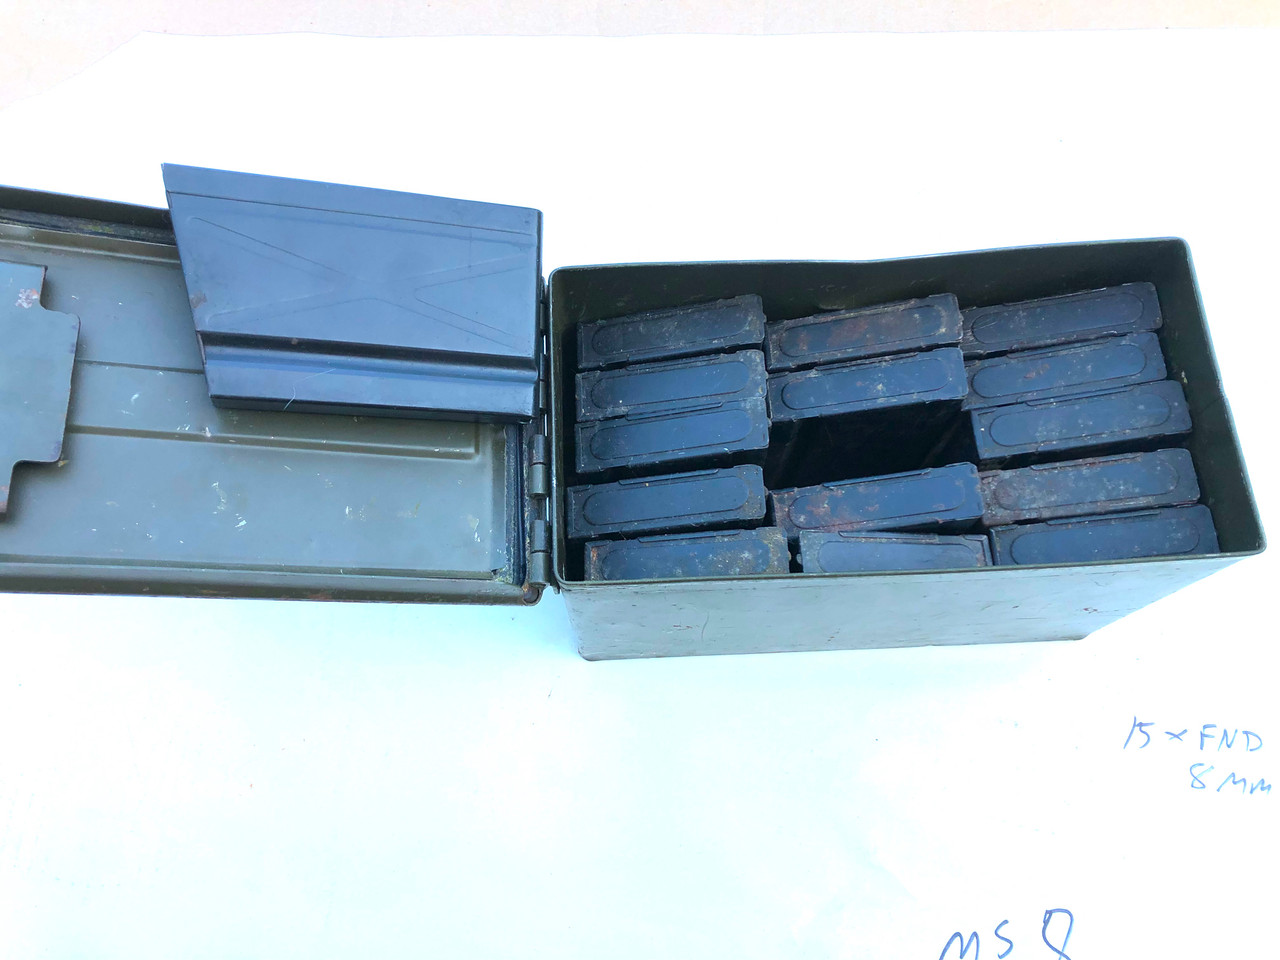 Lot of 15 x FN-D 8mm Magazines with 50 cal Can (Ships Free in Lower 48)